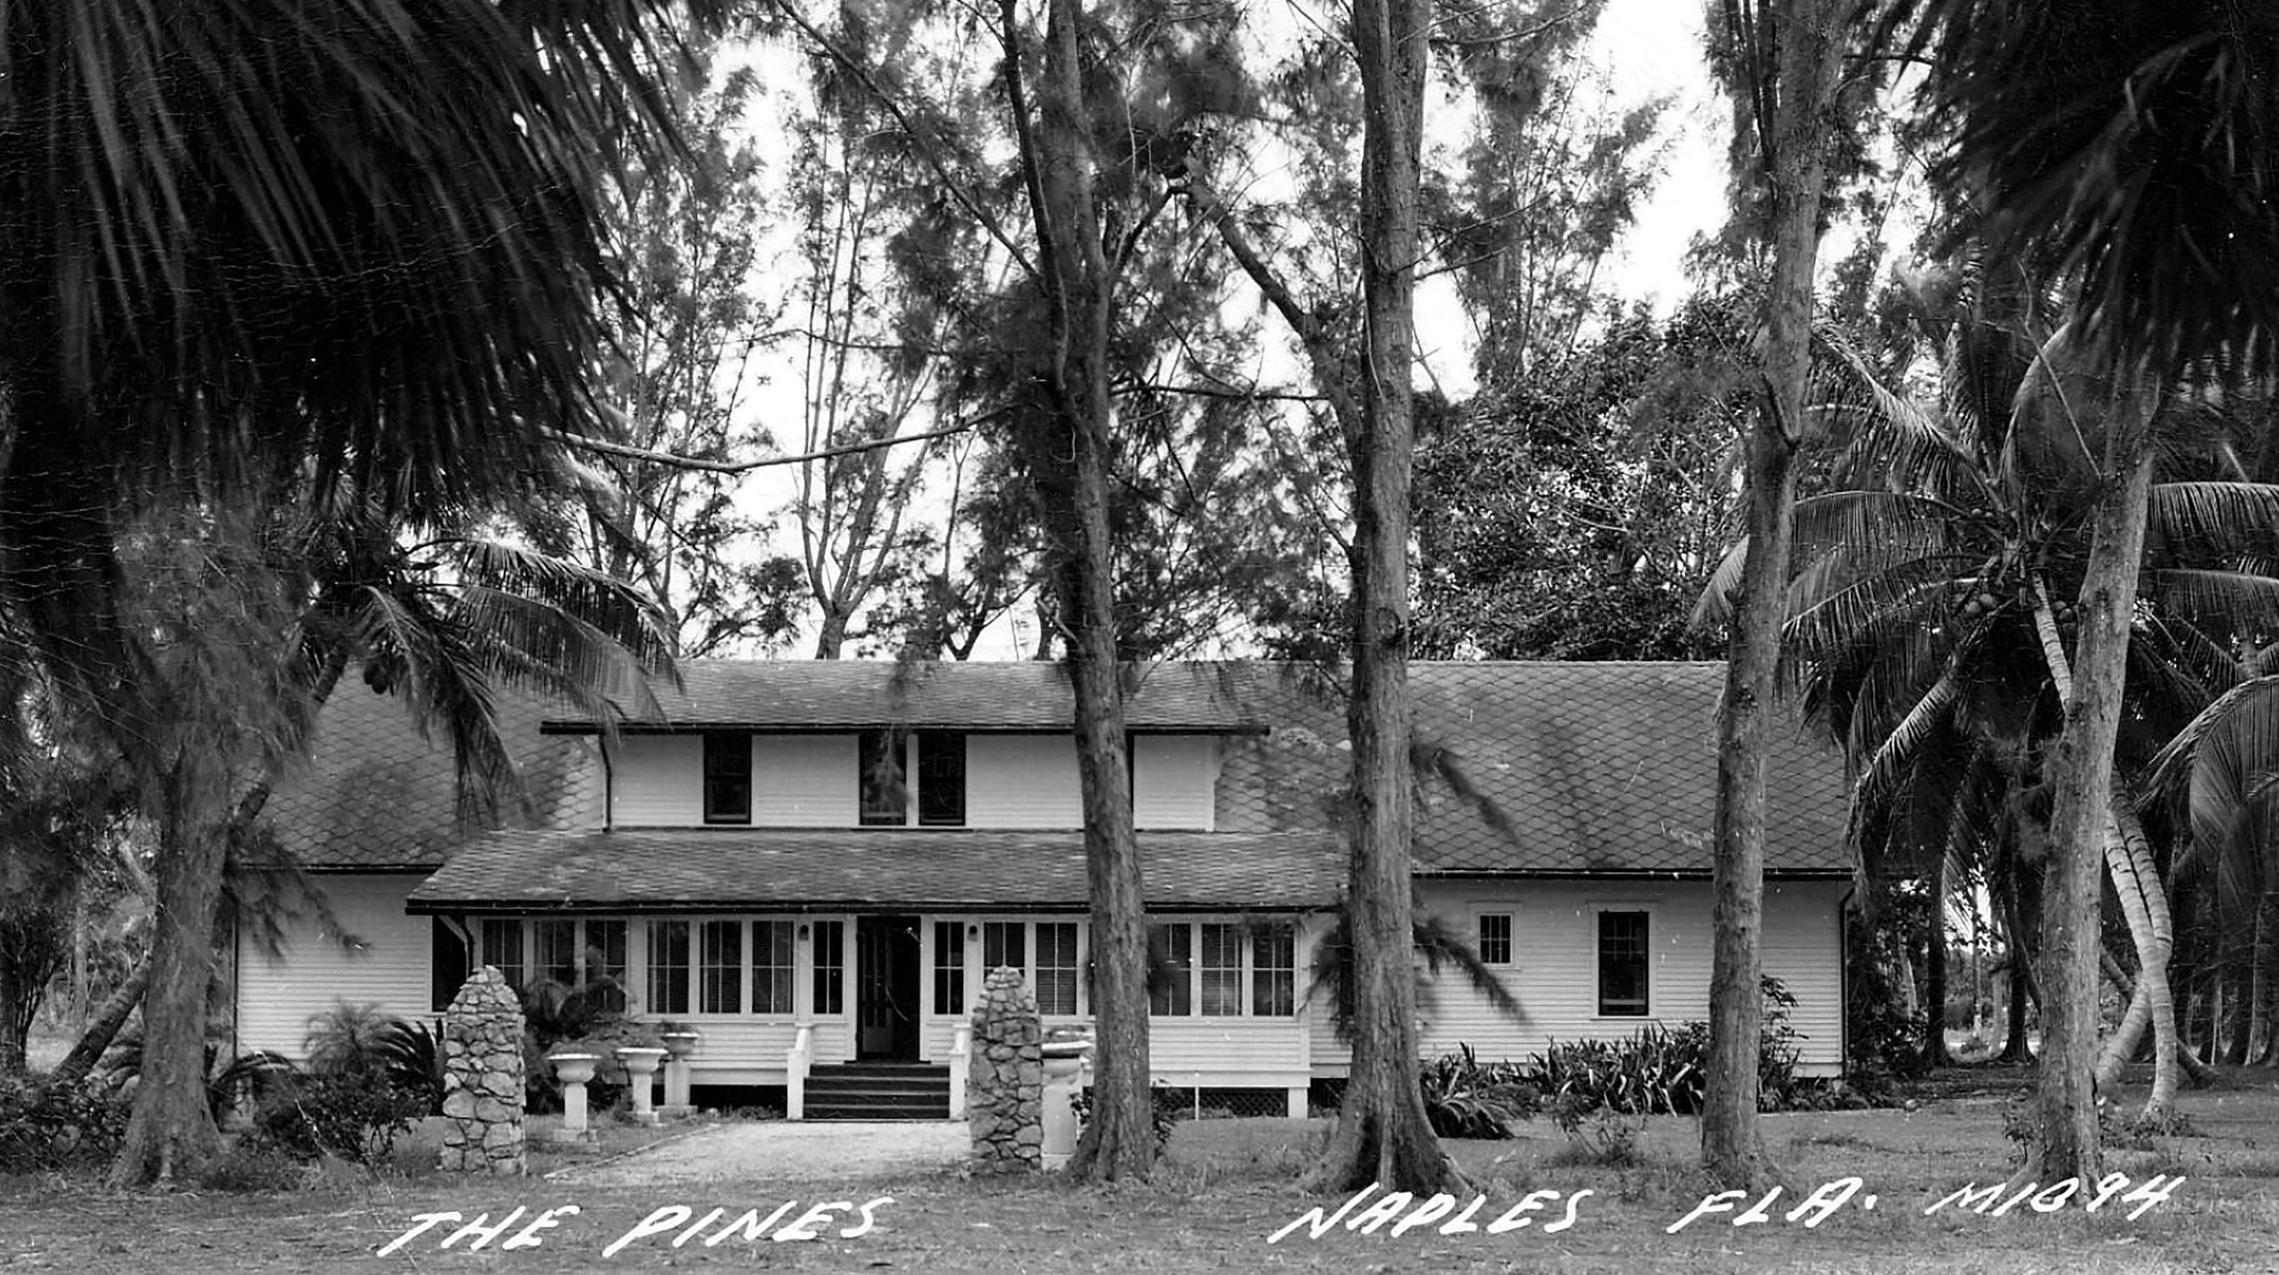 """George Hendrie's home """"The Pines"""" located across the street from Palm Cottage on 12th Avenue South, c. 1939"""